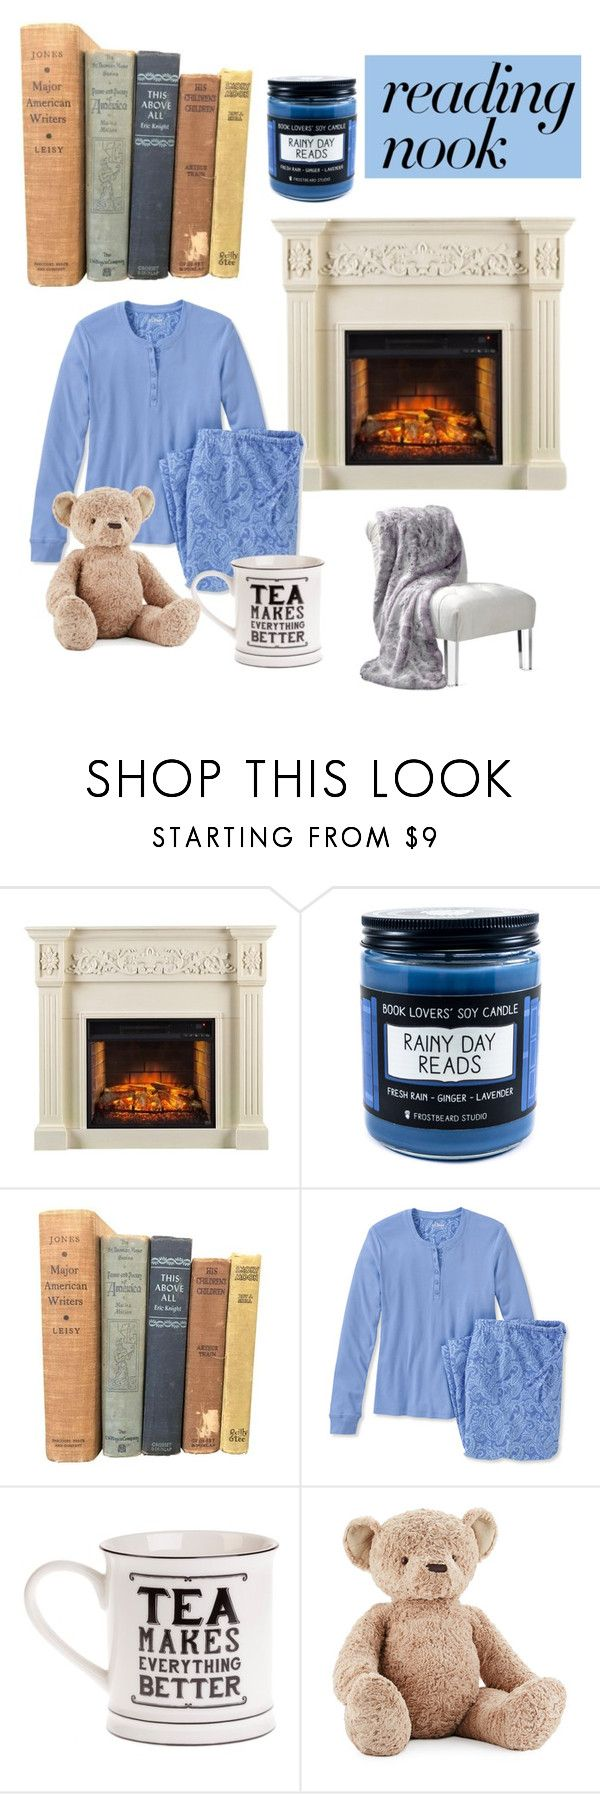 """Cozy rainy day"" by girlboss1 ❤ liked on Polyvore featuring Vintage Collection, L.L.Bean, Jellycat and Nook"